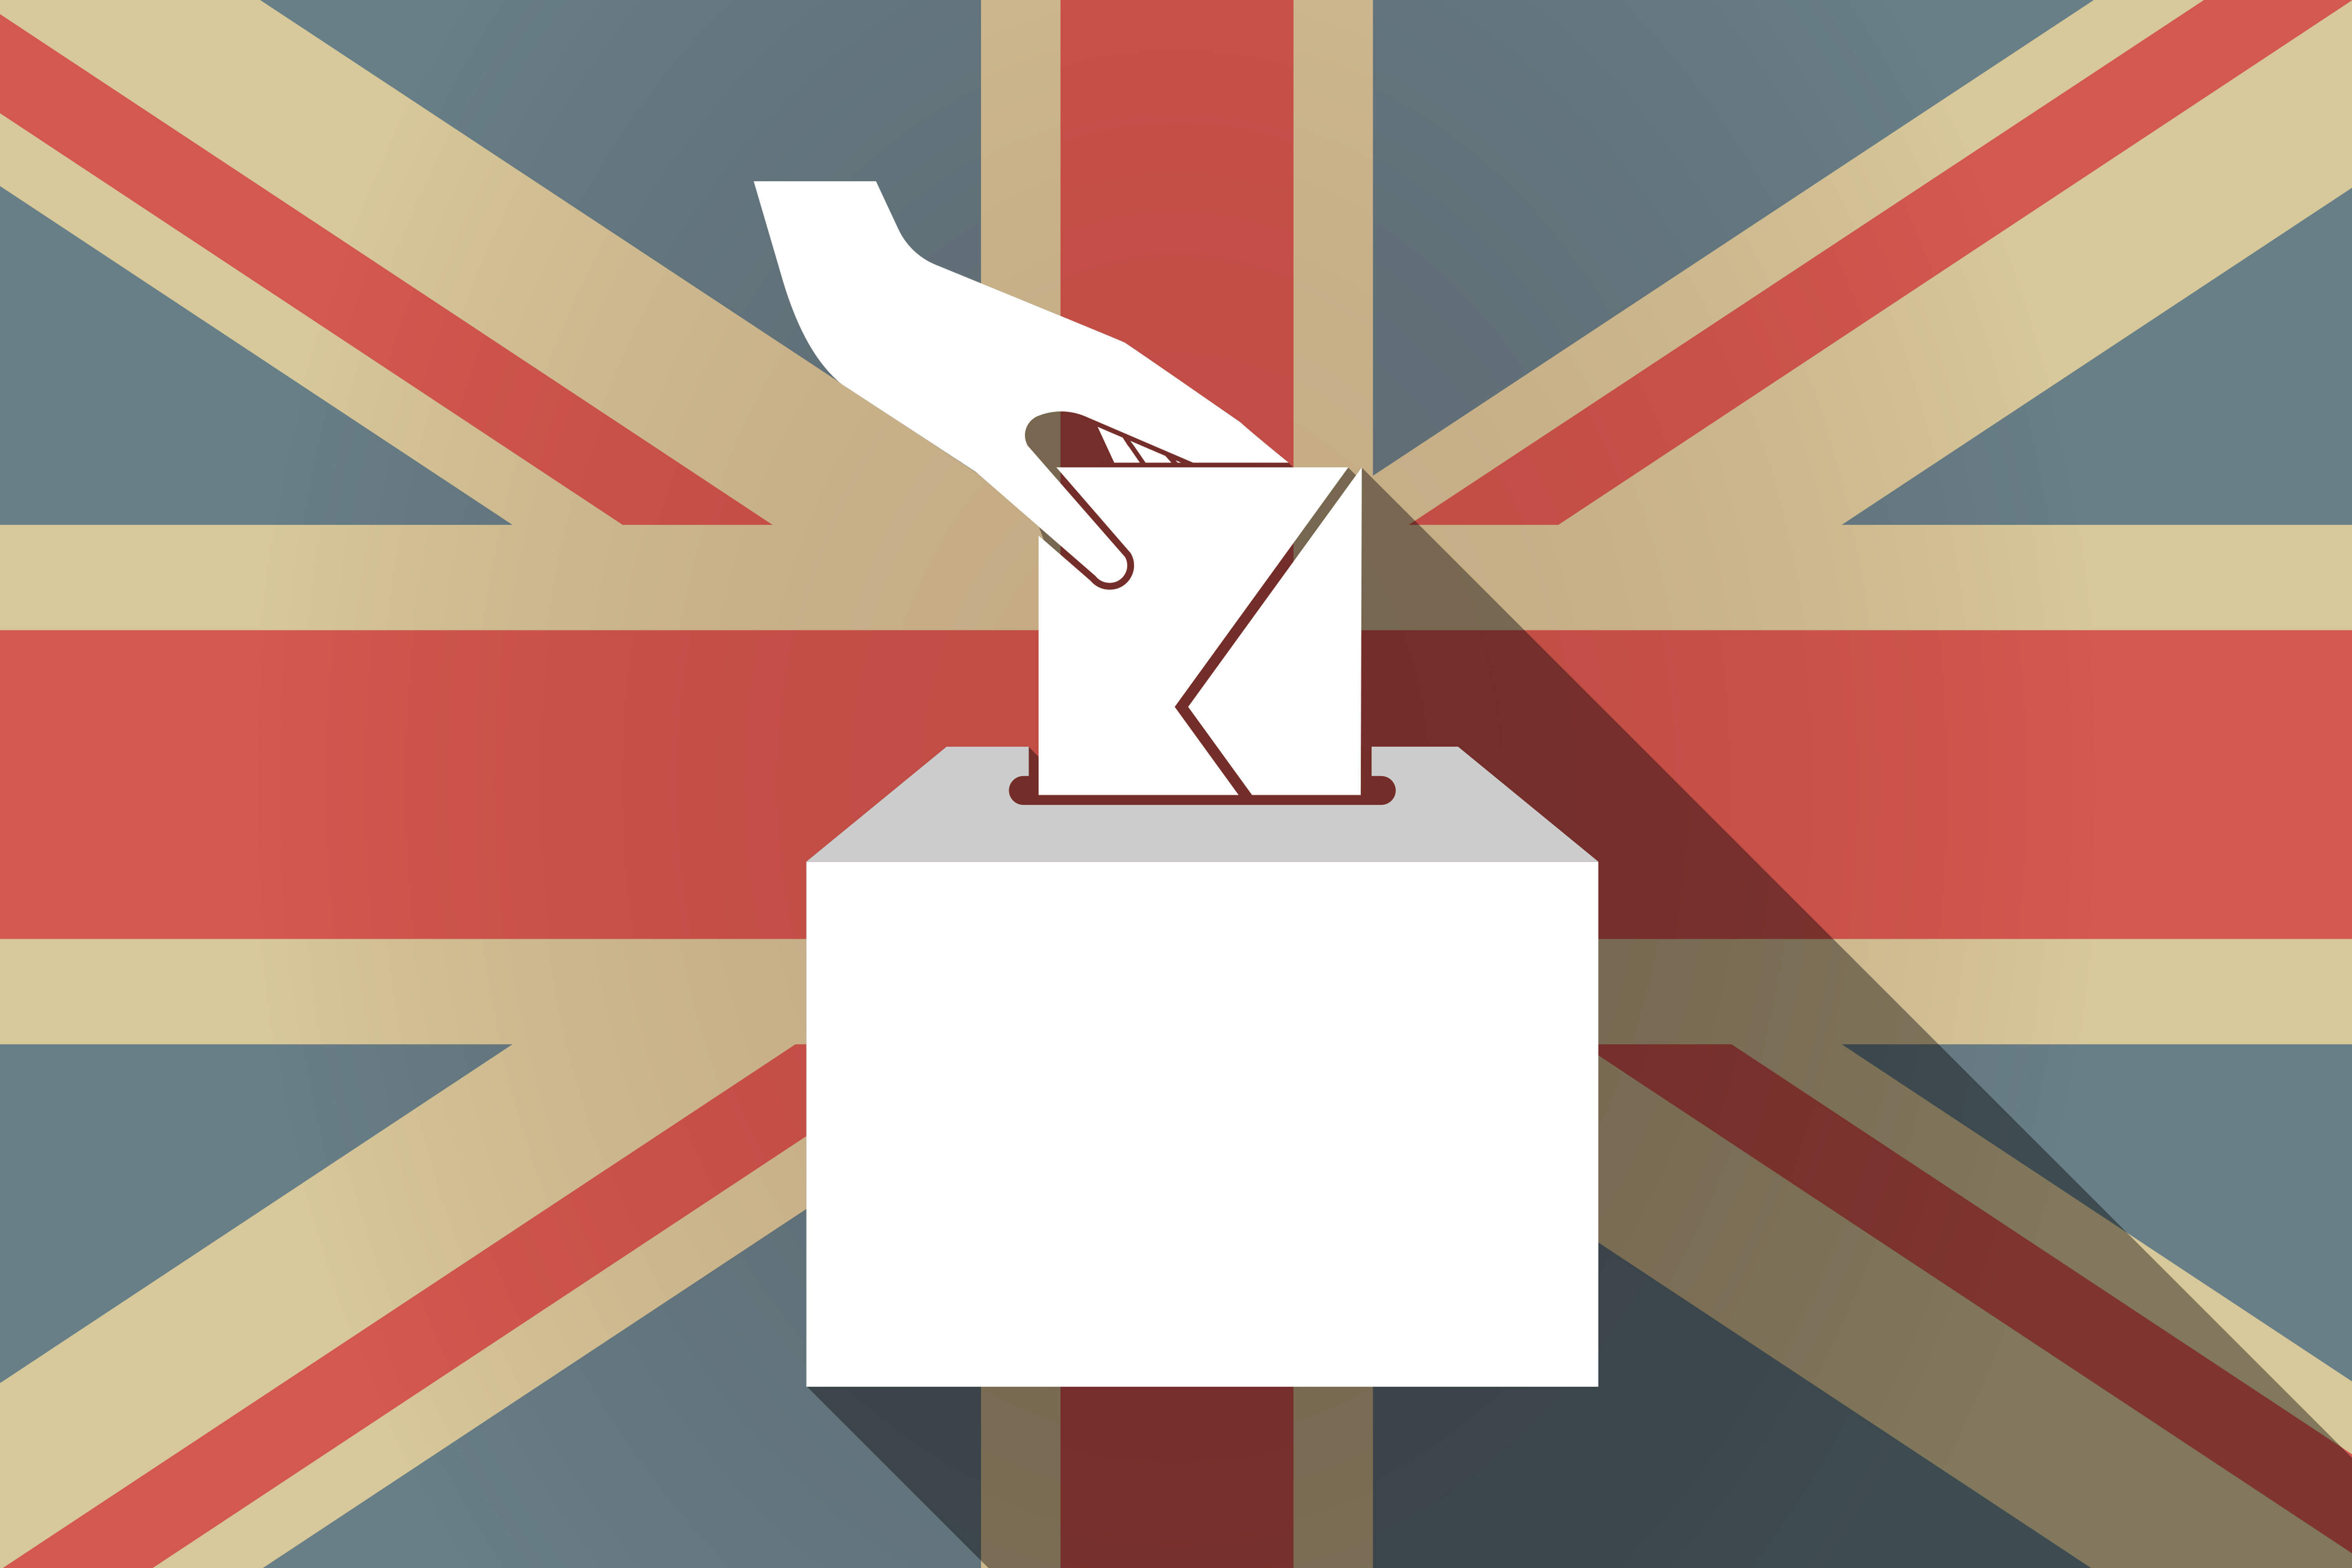 How to vote in the general election: These are the 3 ways you can vote